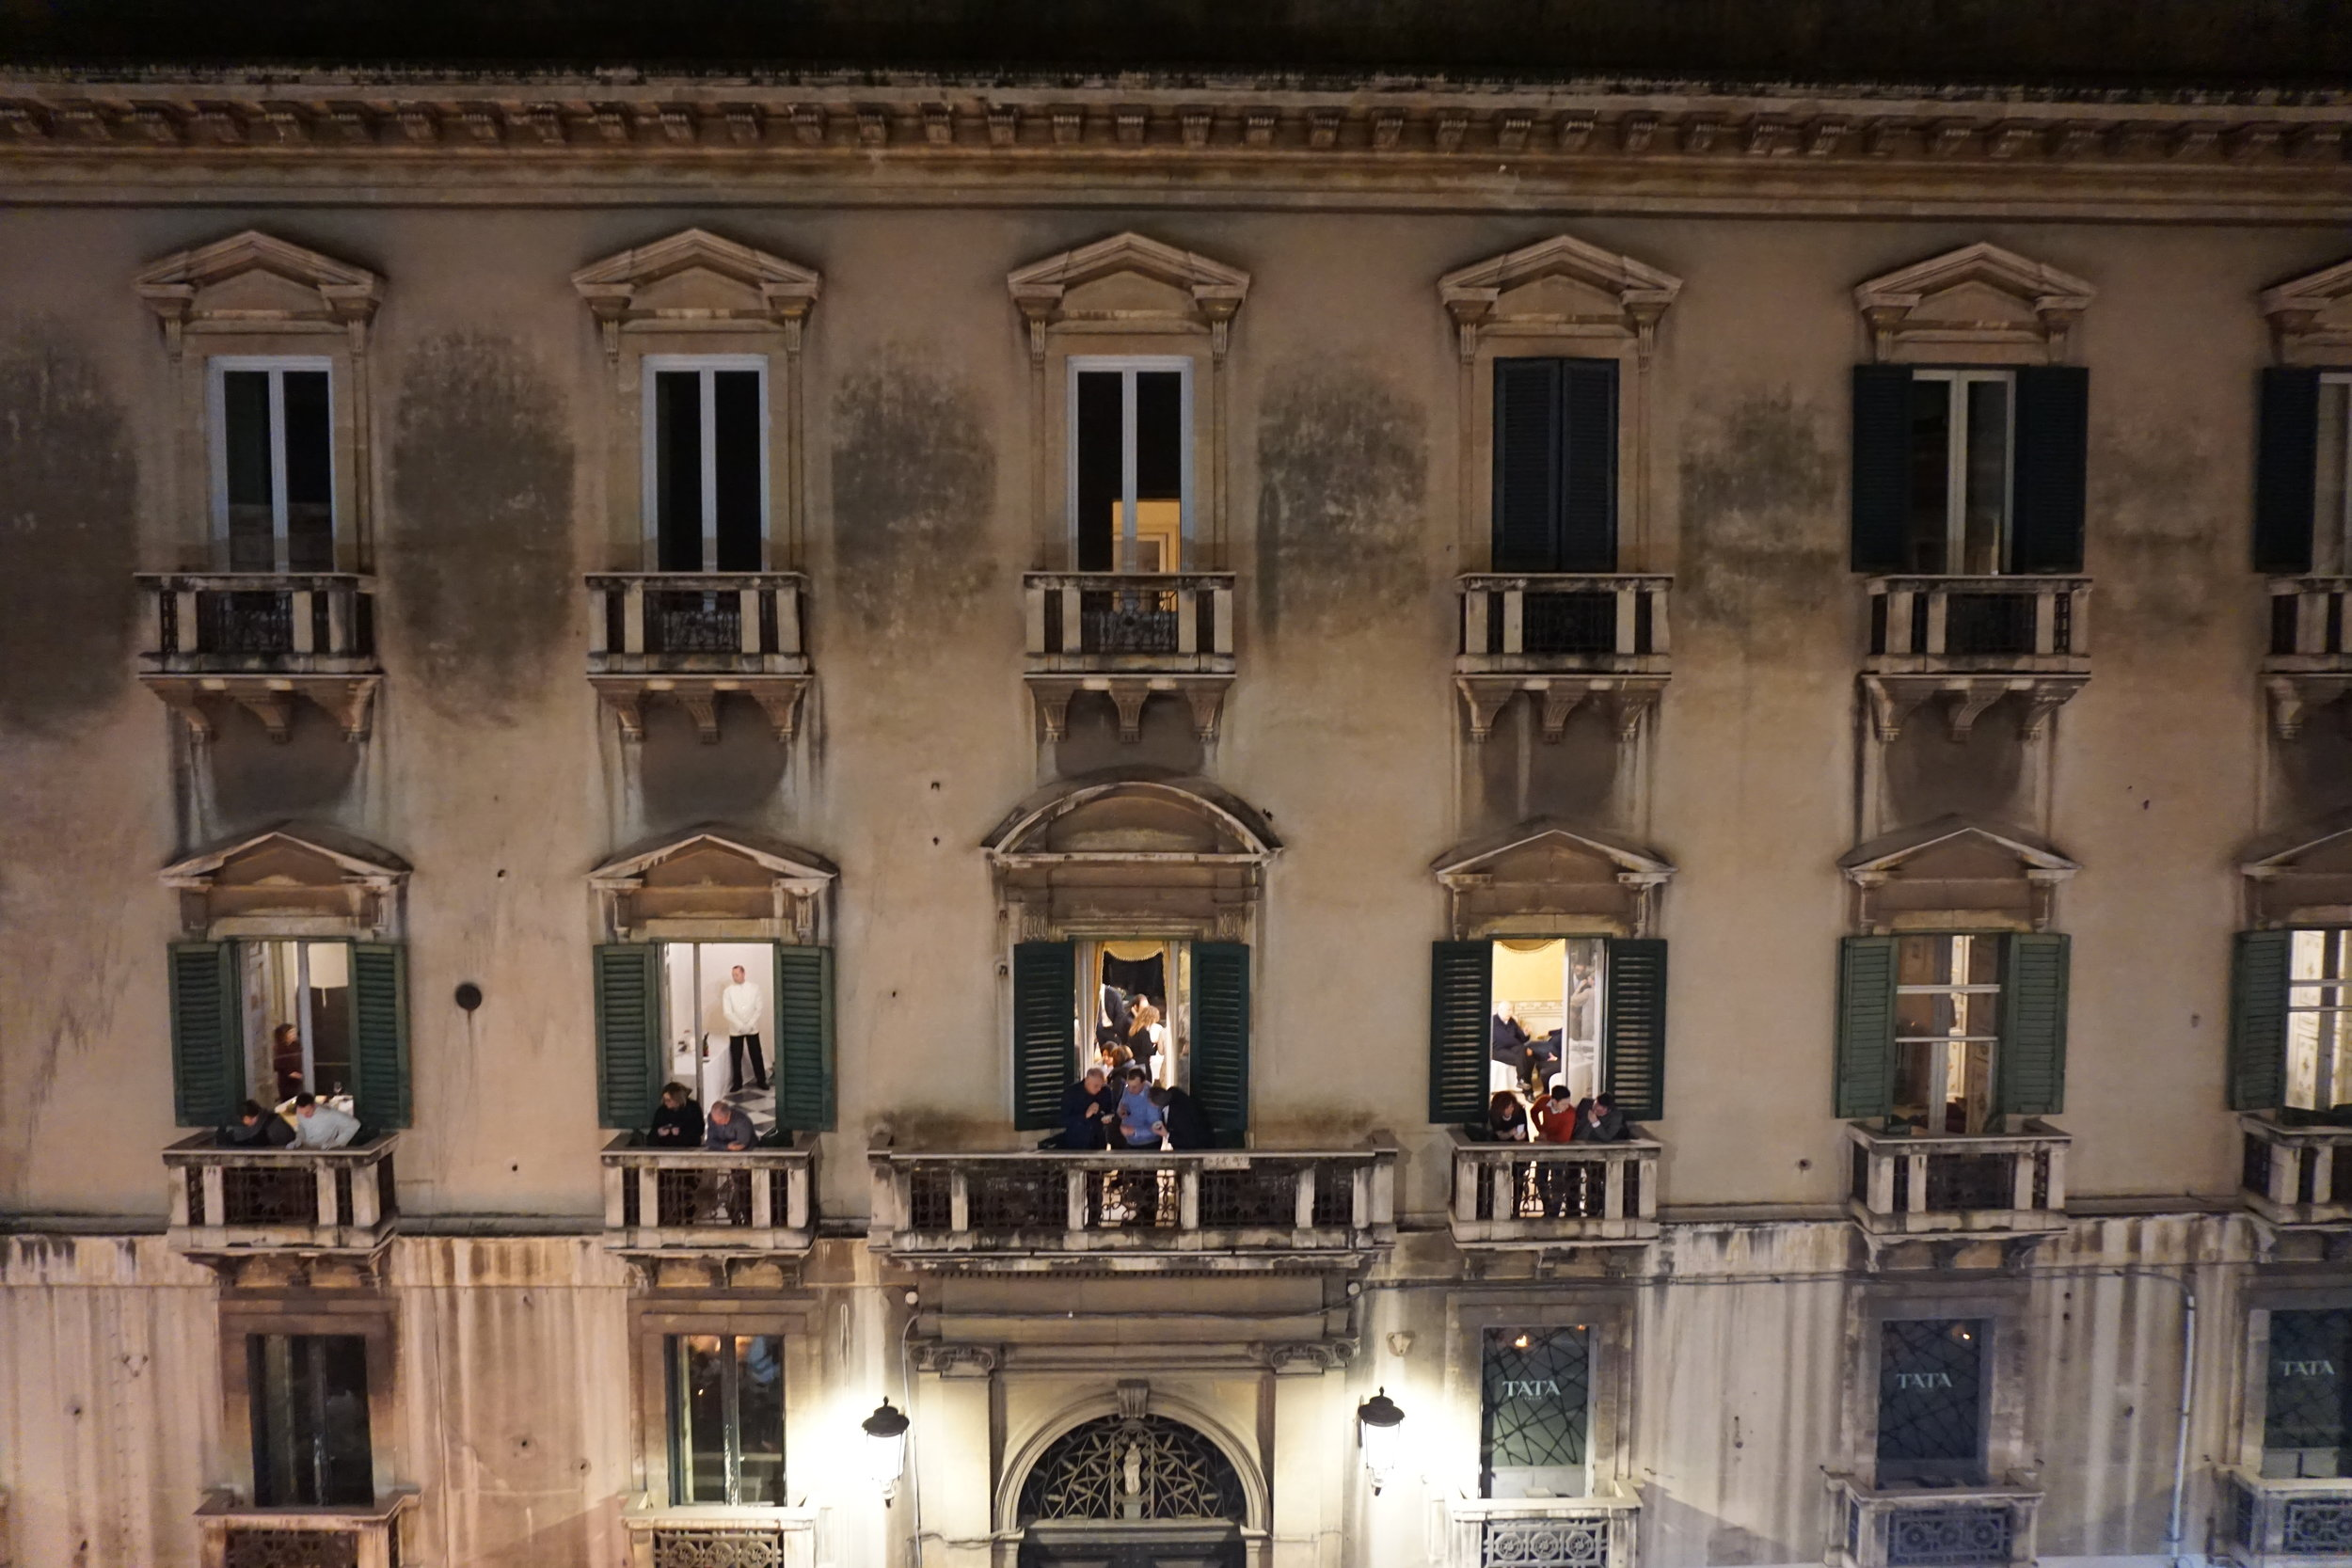 The balcony across from our party. It seems they too were enjoying the similar festivities on Via Etna. PICTURE BY TRAVEL ITALIAN STYLE